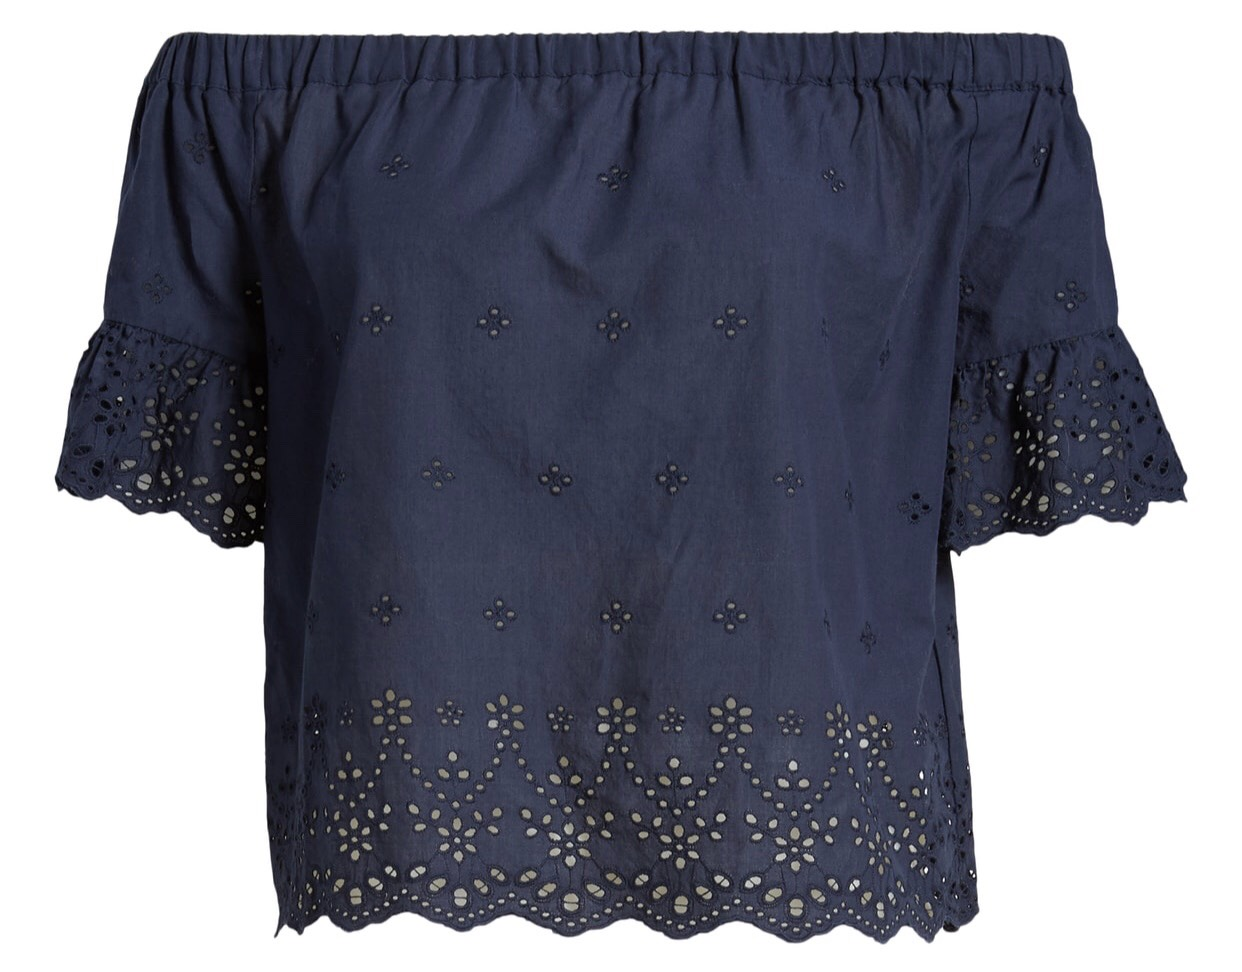 Madewell OTS Eyelet Blouse {$58.90} - After sale: $88